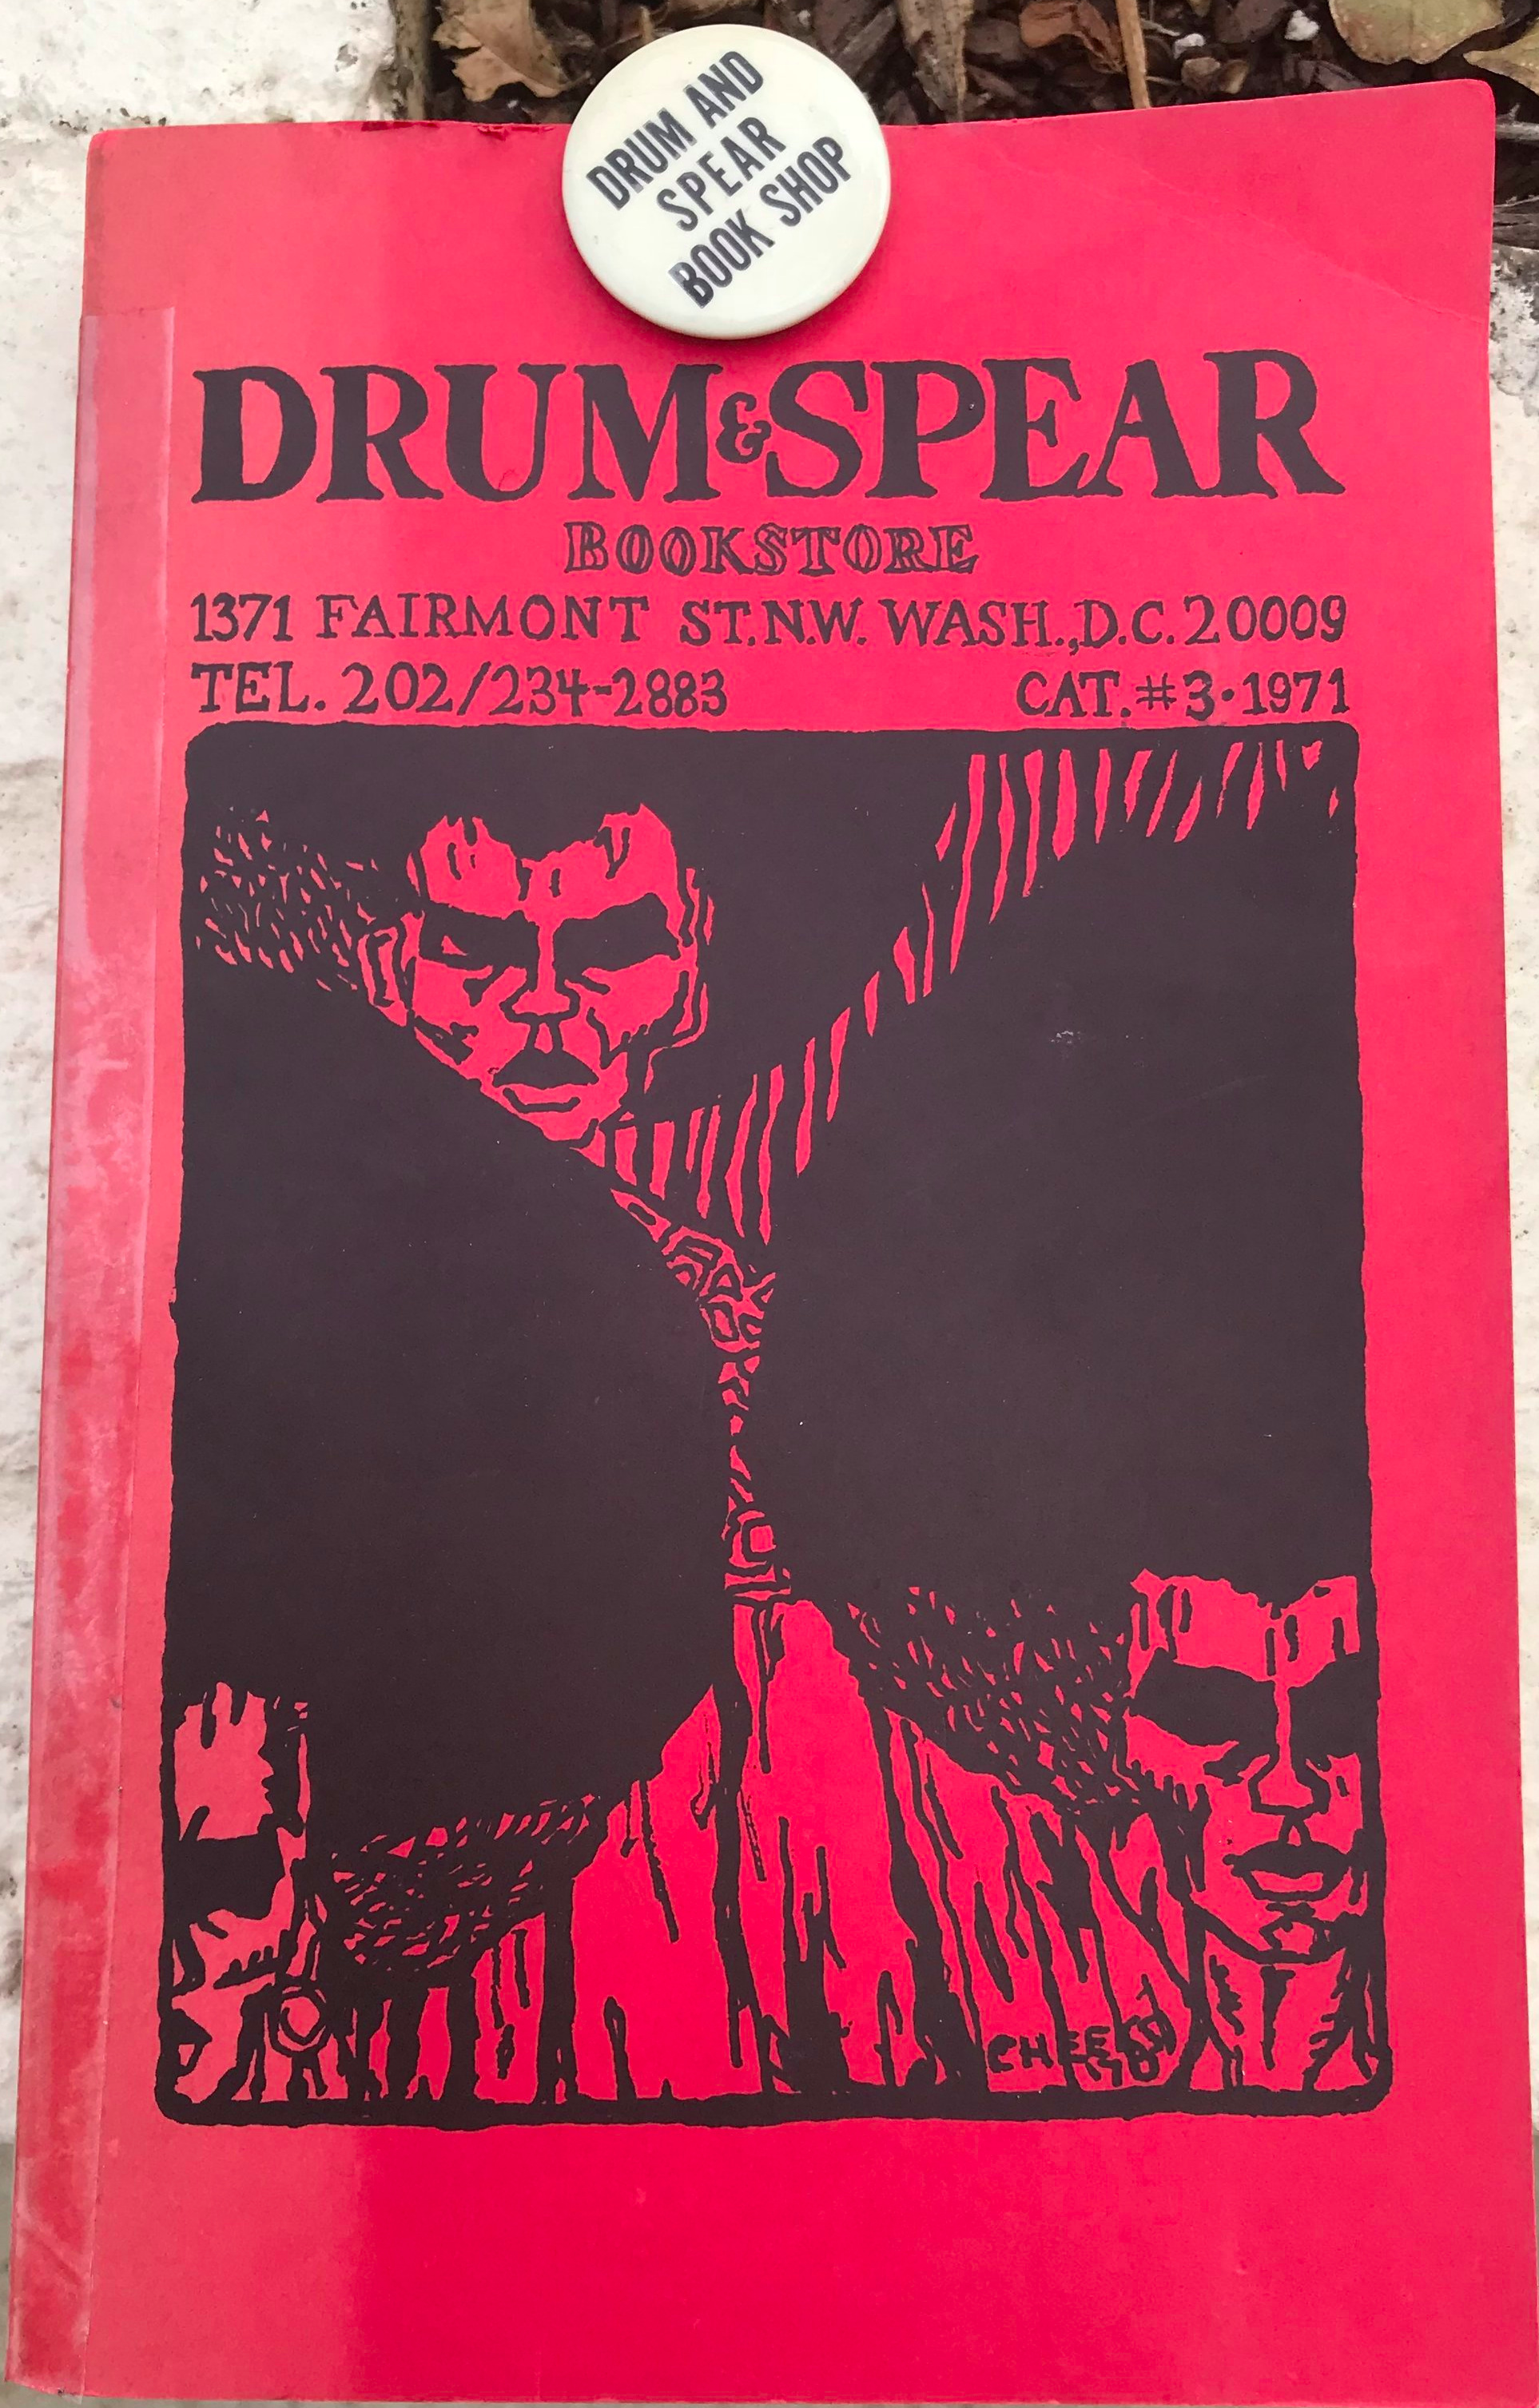 Courtesy Judy Richardson Collection.  Drum & Spear Book Store Catalog #3 , 1971 and Drum & Spear Book Shop pin-back button. Marya McQuirter, photographer. 8 November 2018. Drum & Spear moved to a larger space, around the corner from the original store, to 1371 Fairmont St NW by 1970.